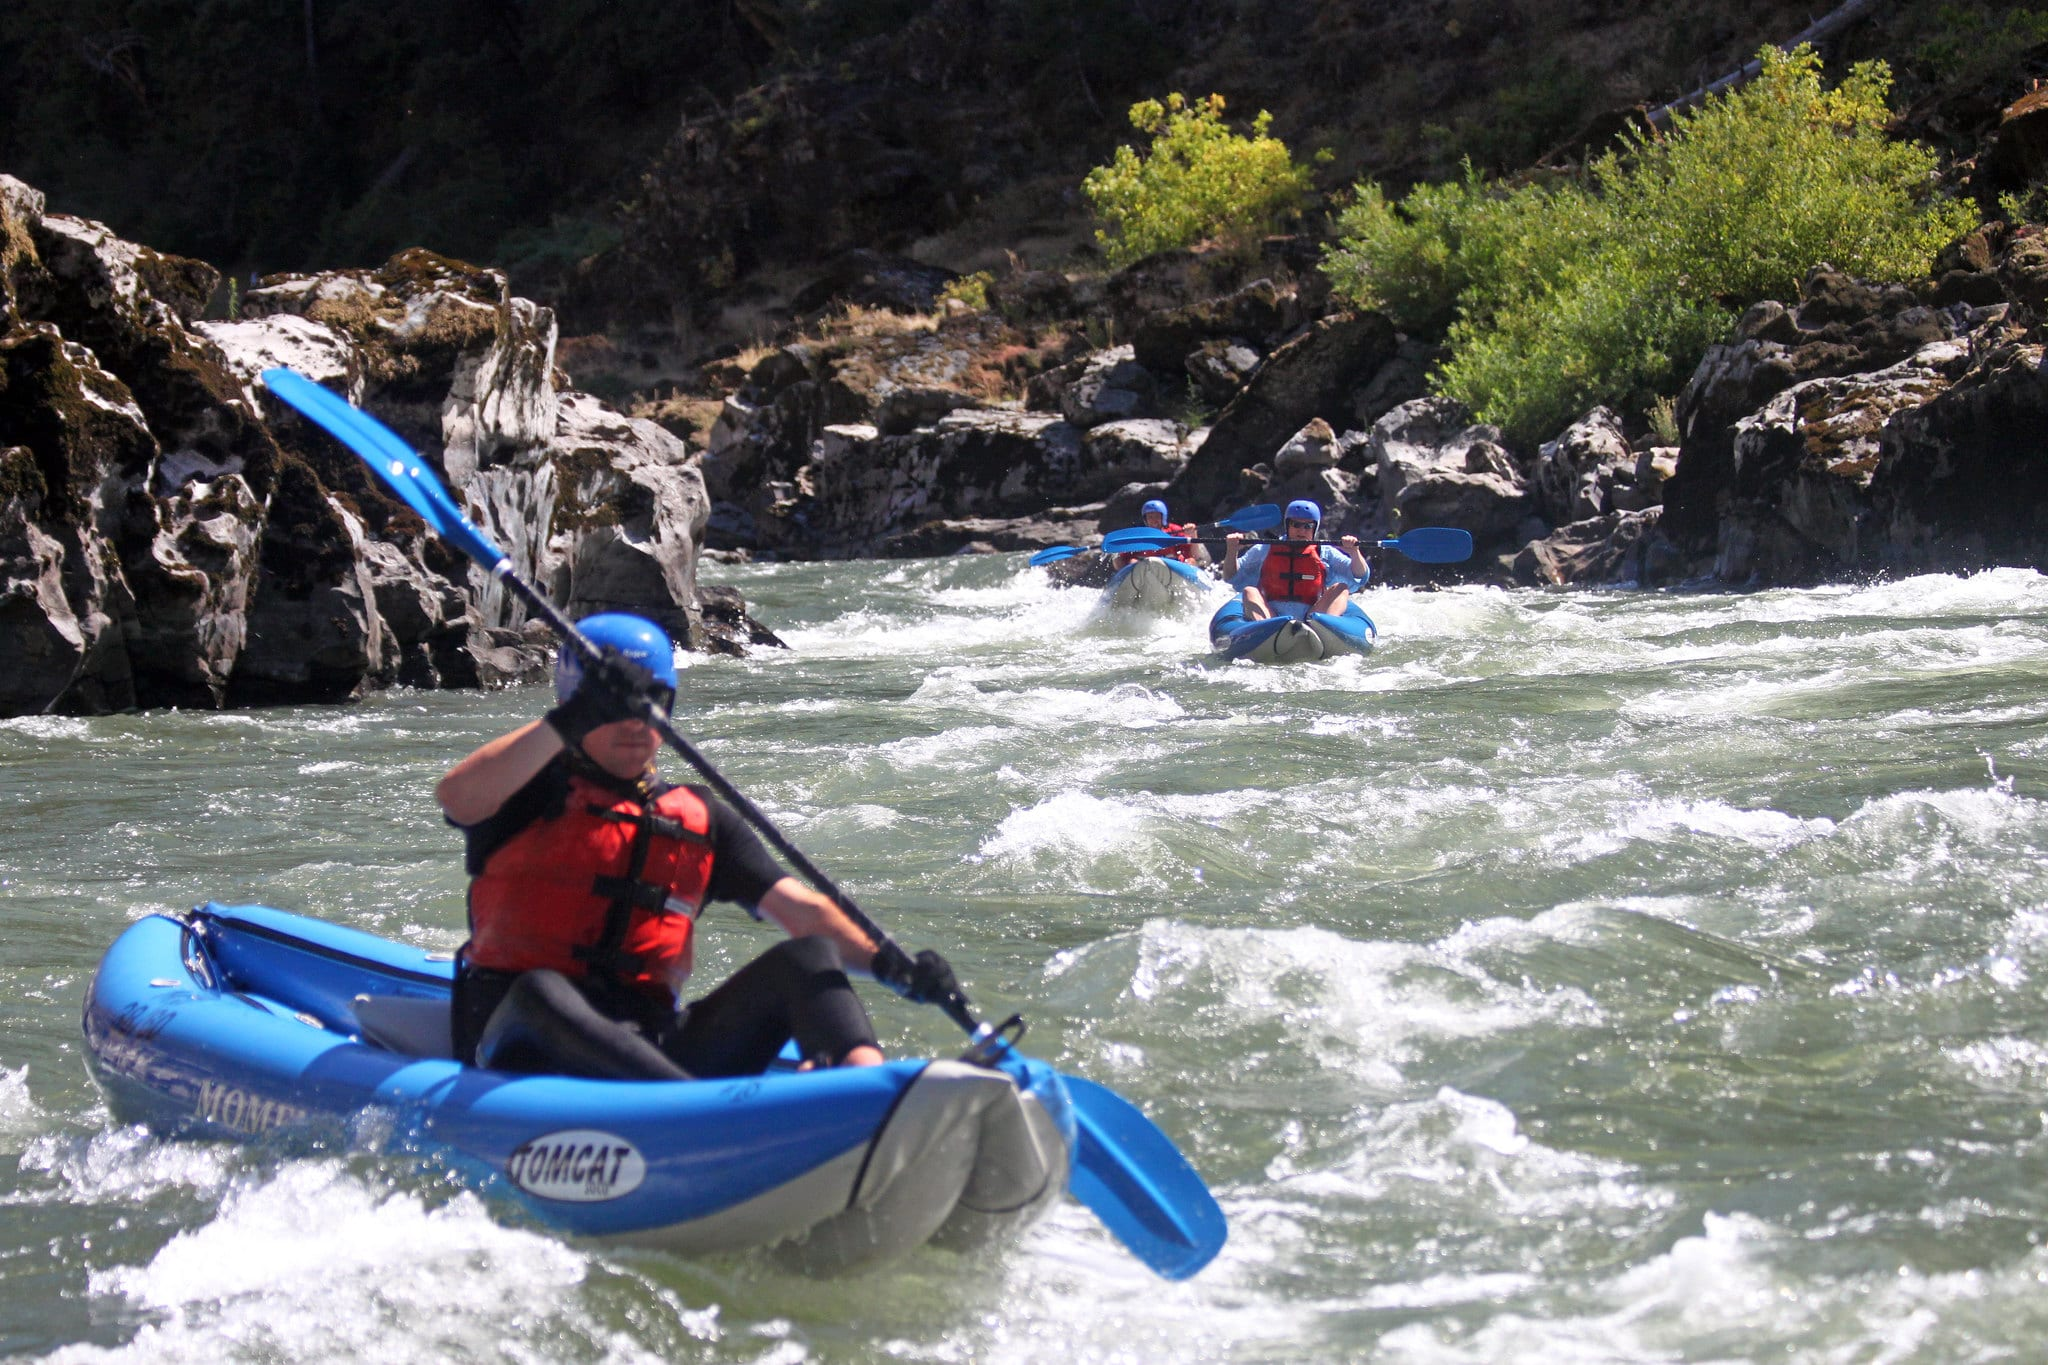 Heading for the Rogue River